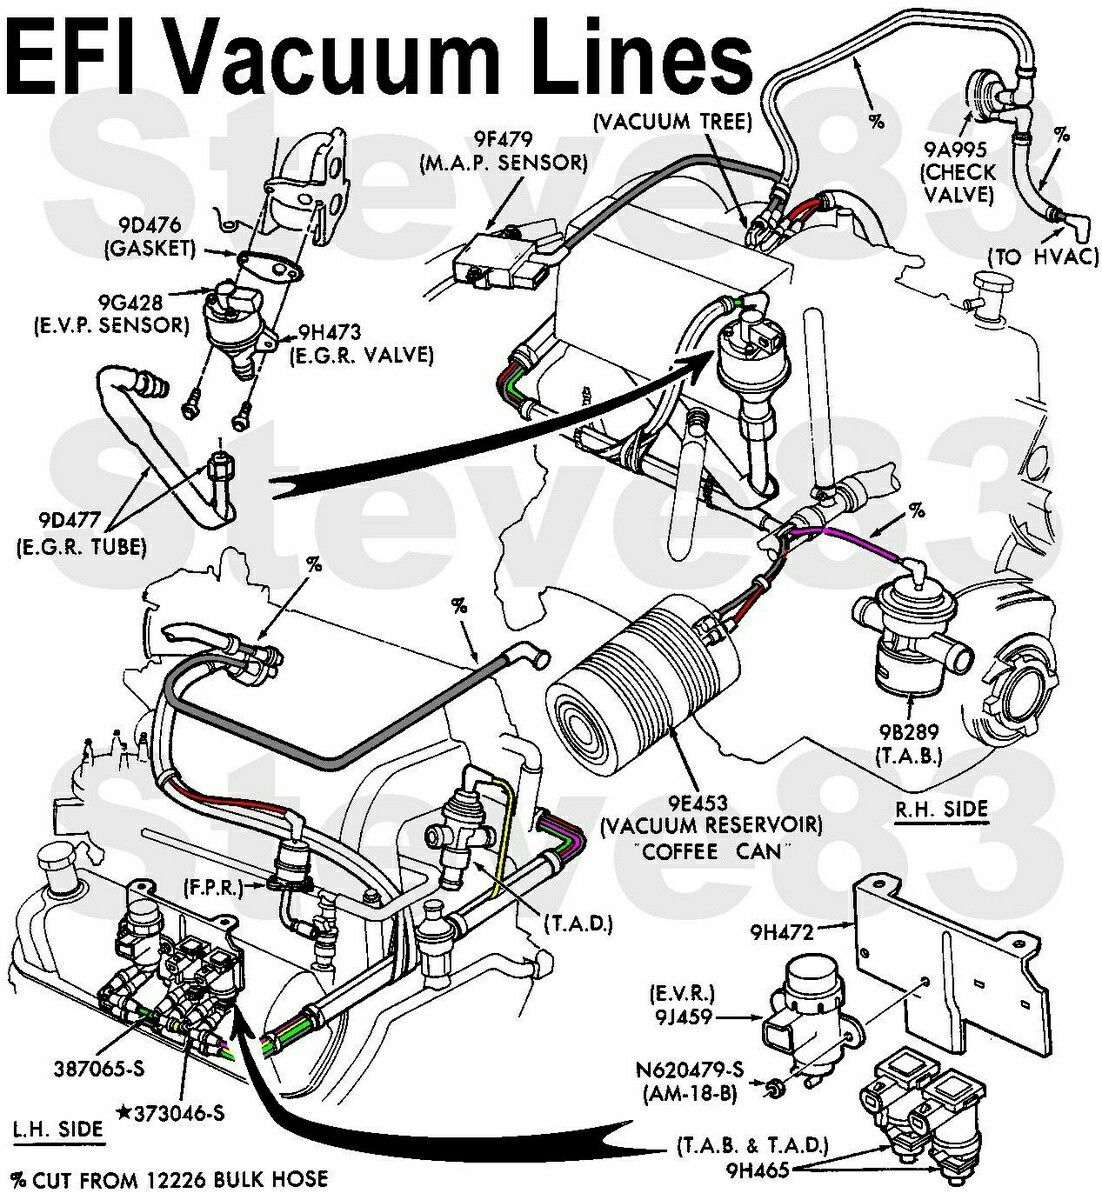 pin by jan rasmussen on ford econoline dmc 1992 | electric car engine,  automotive mechanic, ford f150  pinterest